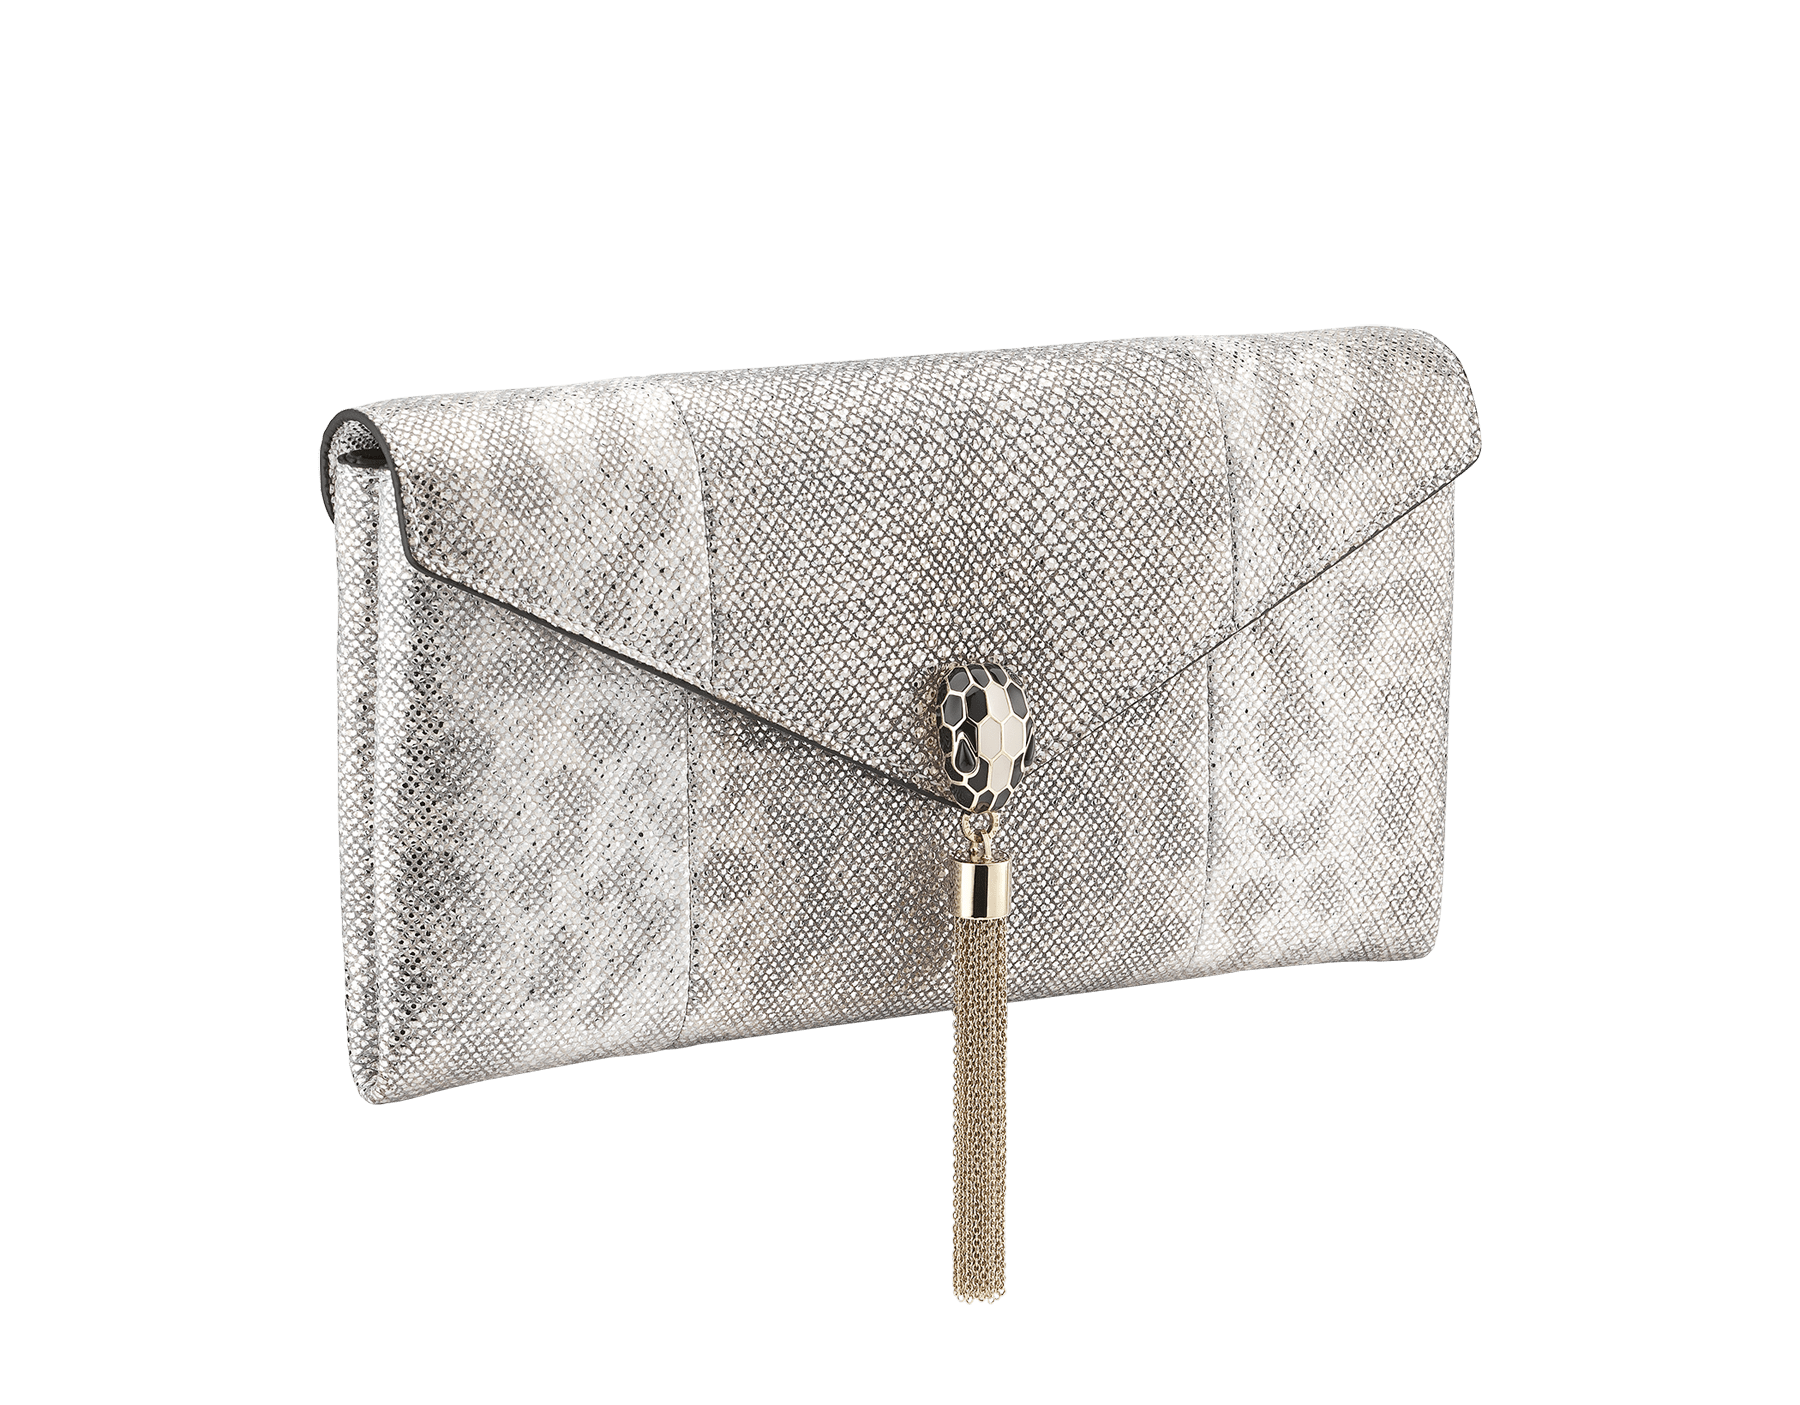 """Serpenti"" evening clutch bag in white agate metallic karung skin. Iconic snakehead stud closure with tassel in light gold plated brass enriched with shiny black and white agate enamel and black onyx eyes. 289004 image 2"